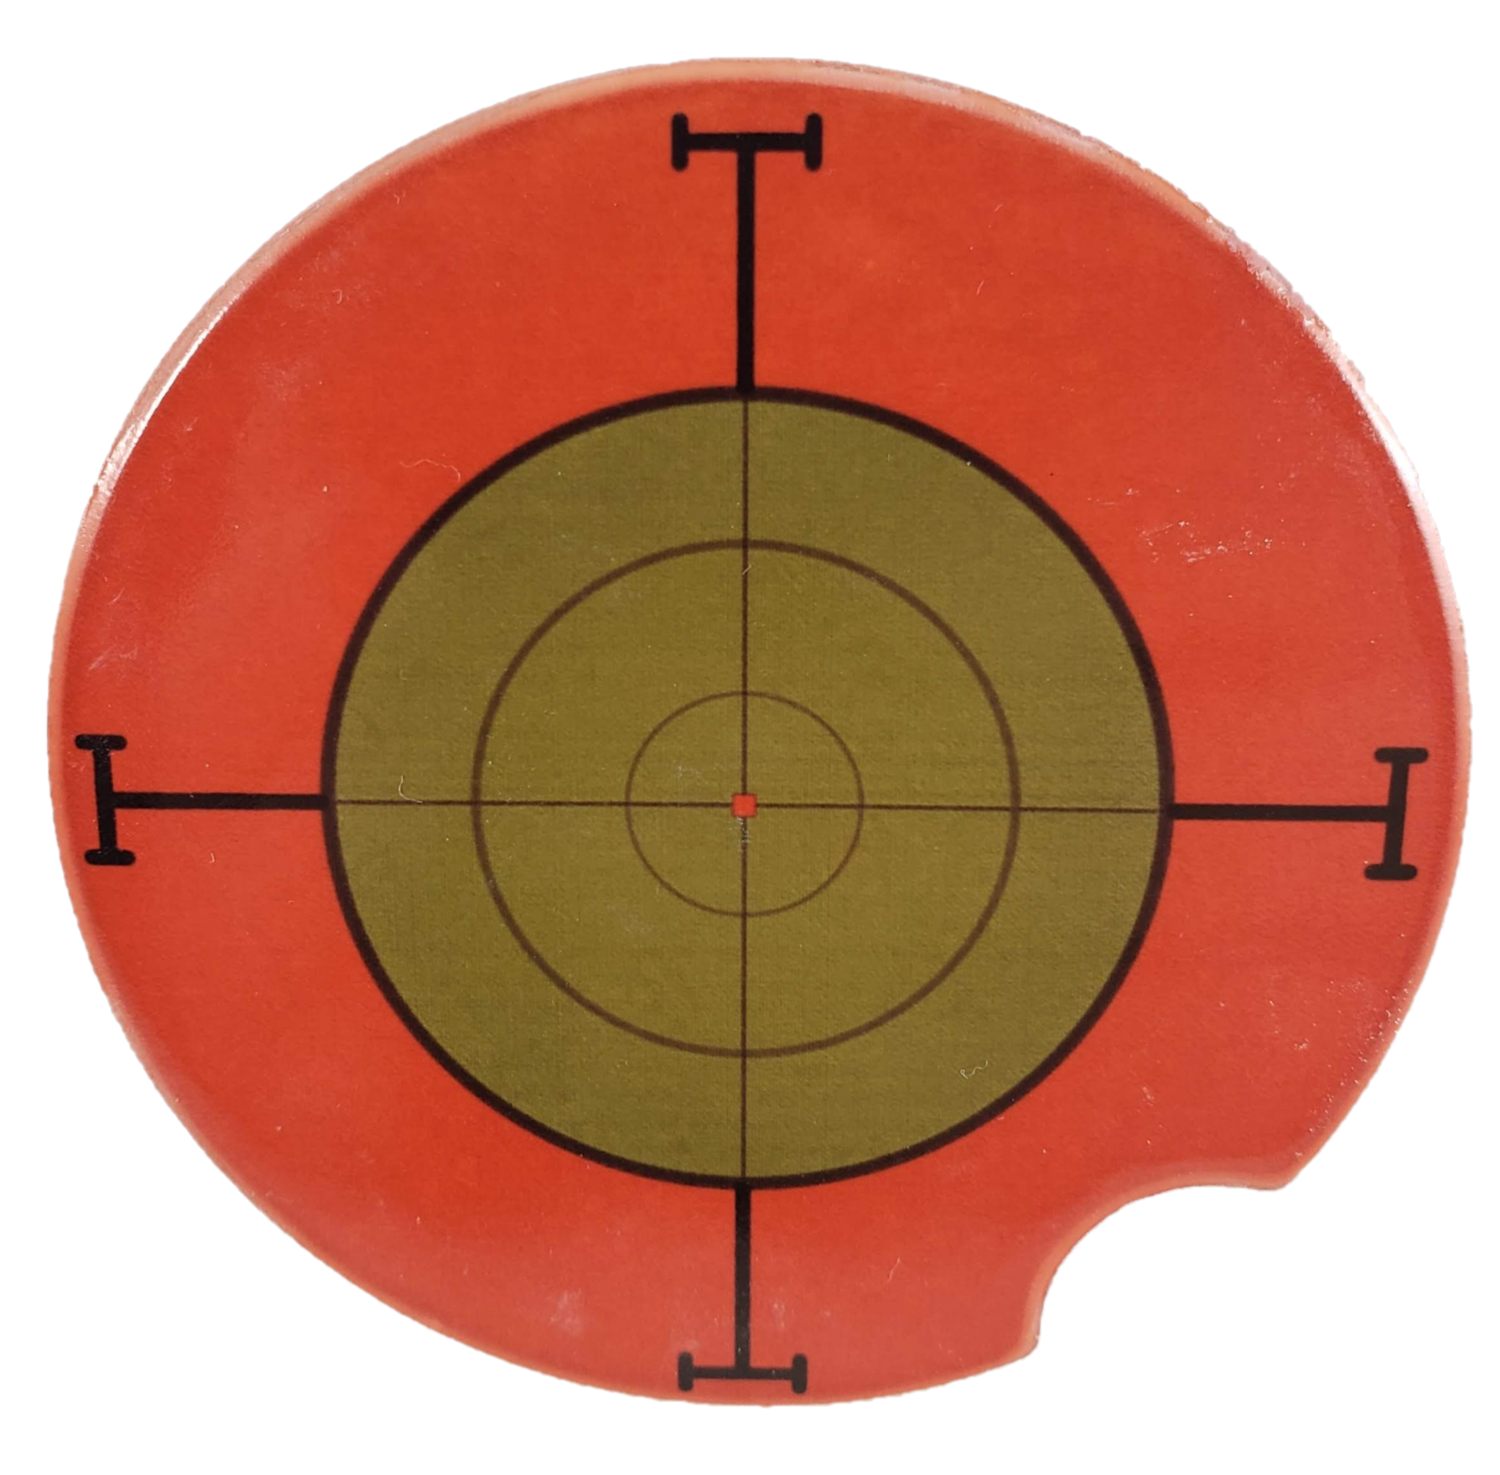 Sniper Target Ceramic Car Coaster - Set of Two